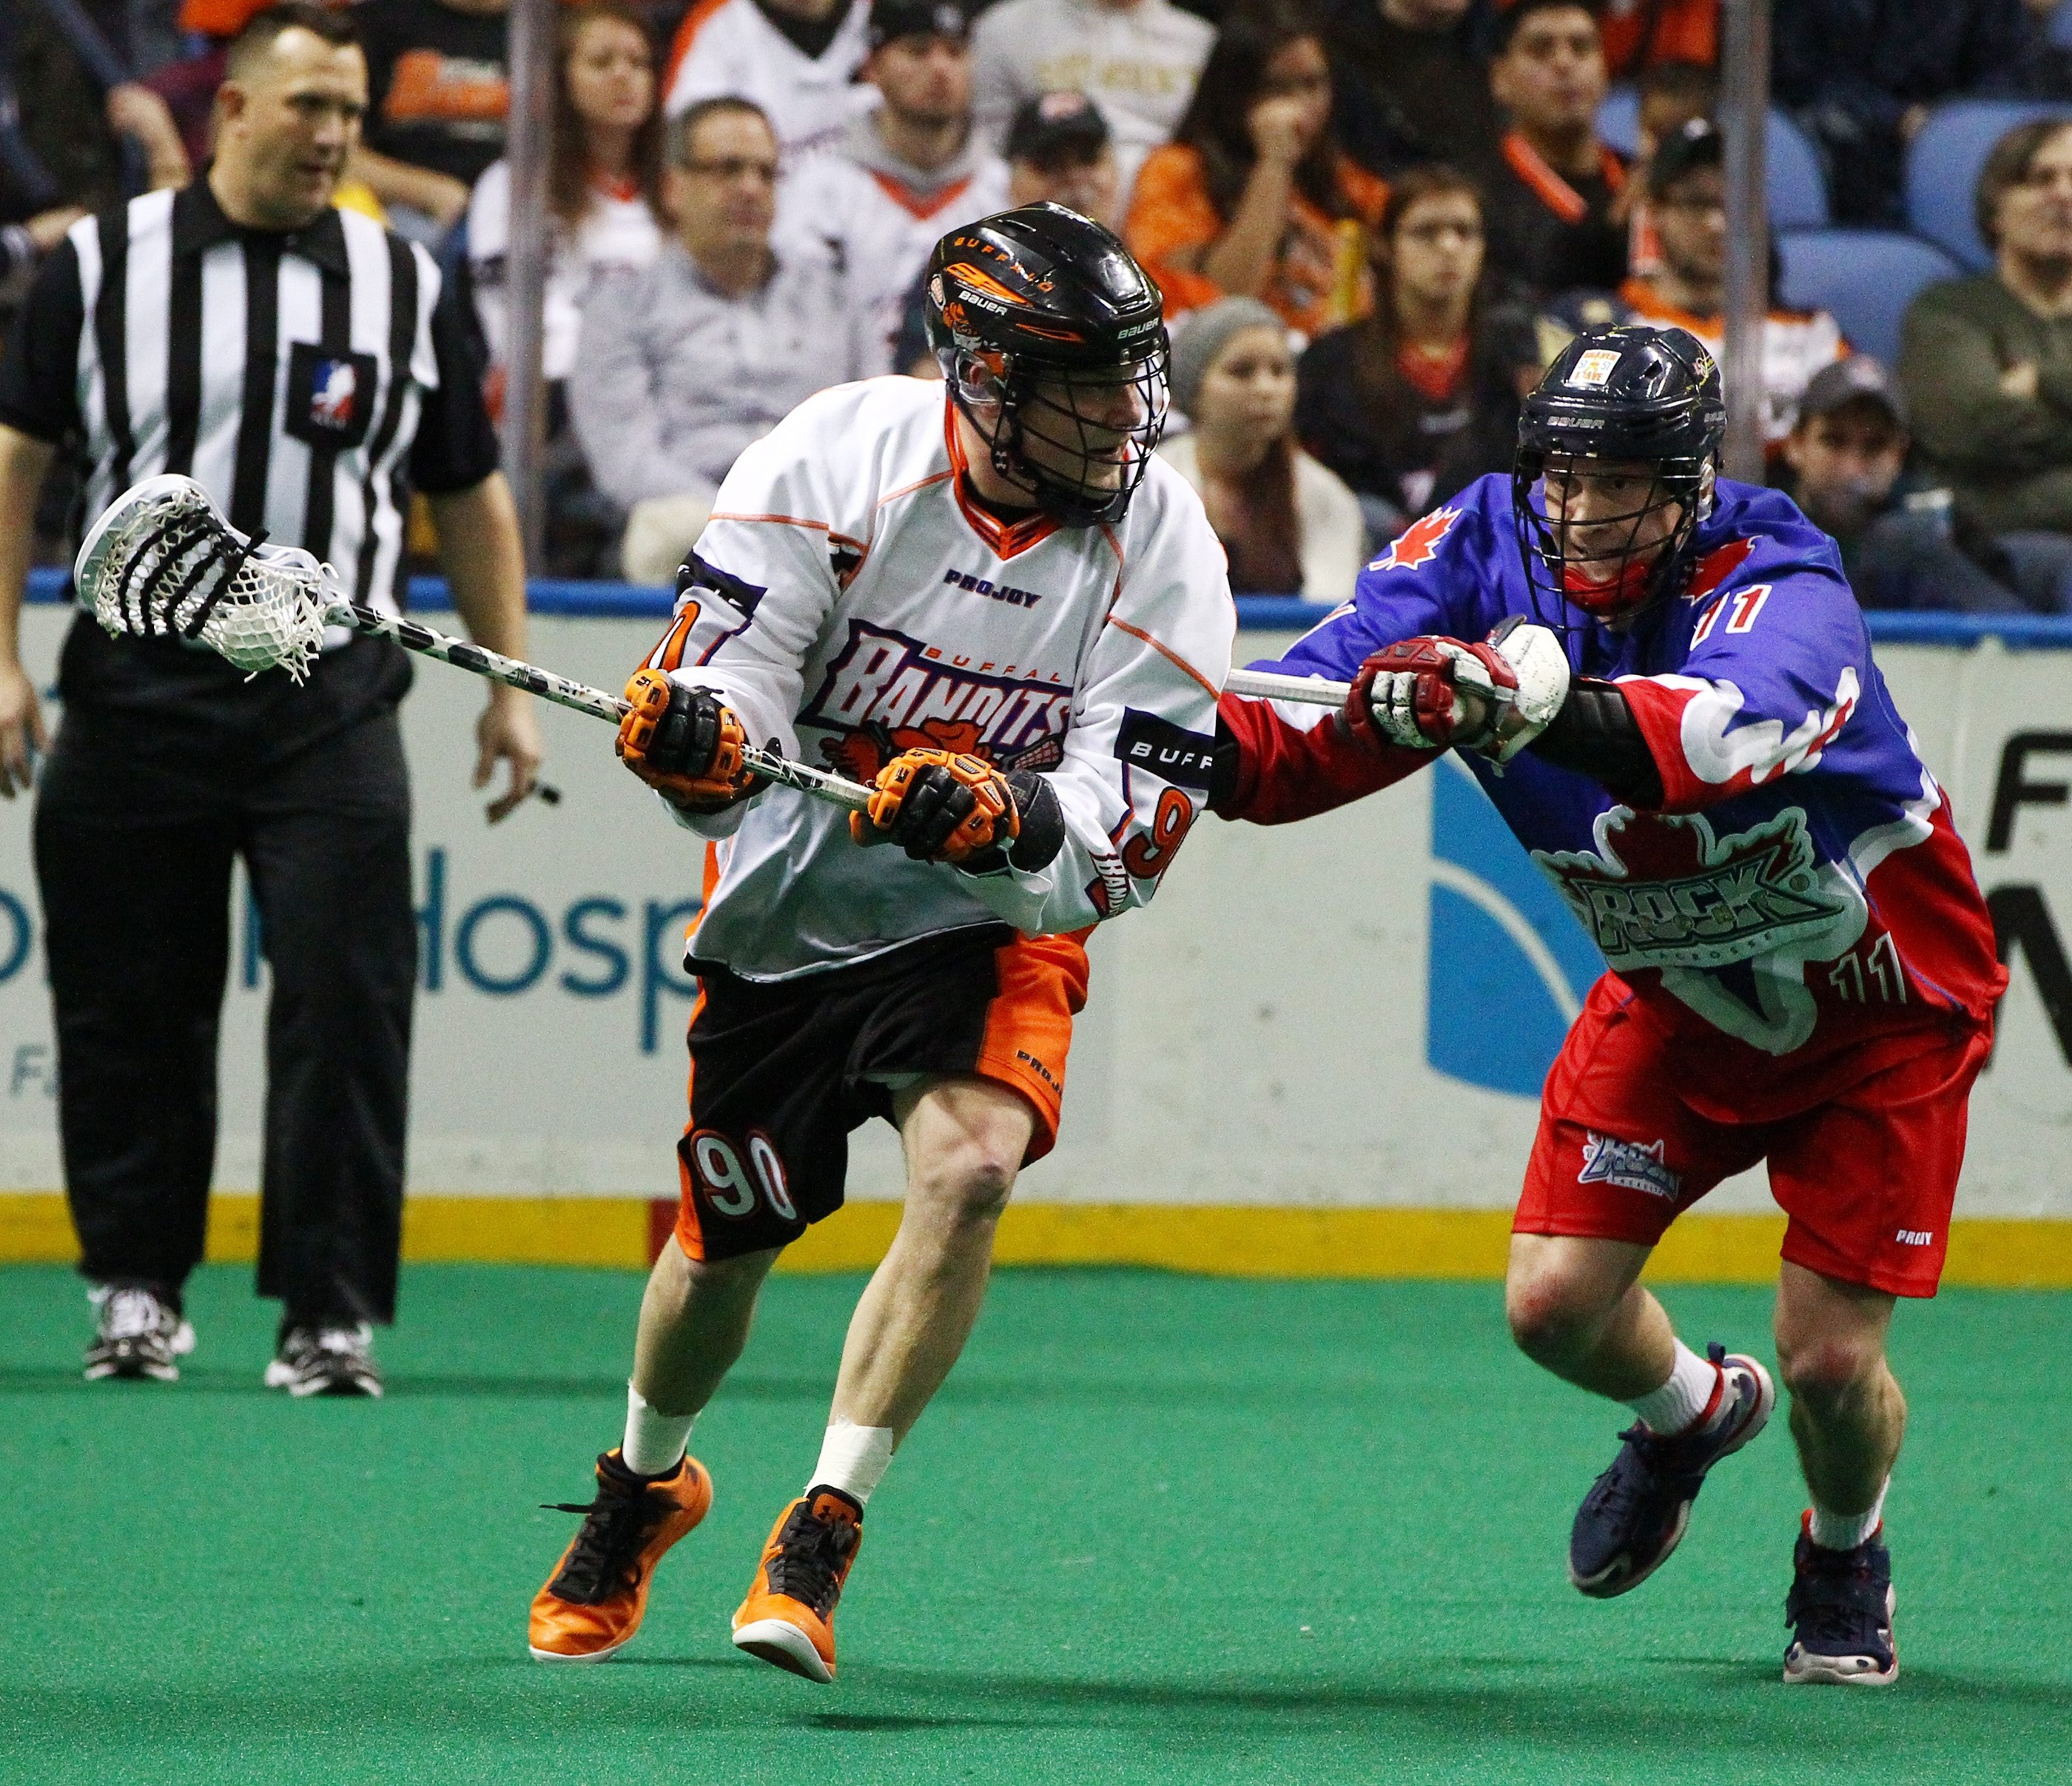 Buffalo's Jamie Rooney works against Toronto's Kyle Belton during first-quarter action at the First Niagara Center.